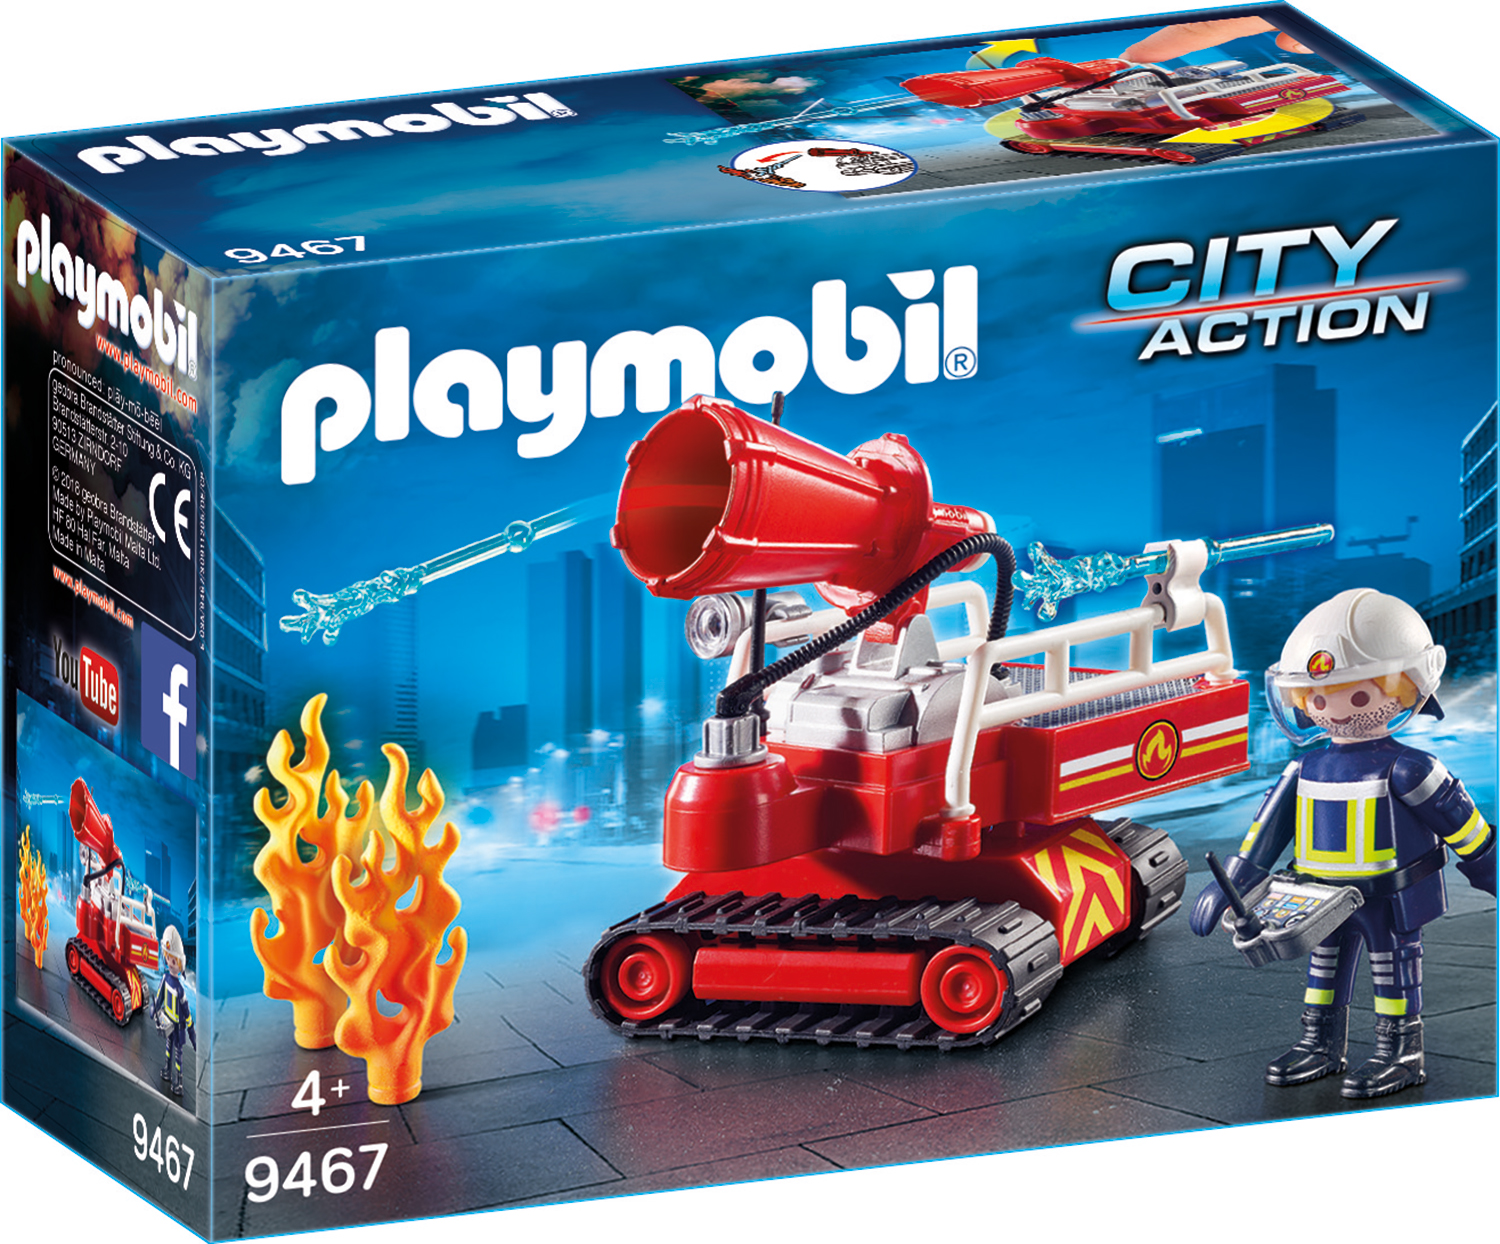 Tun de apa playmobil city action